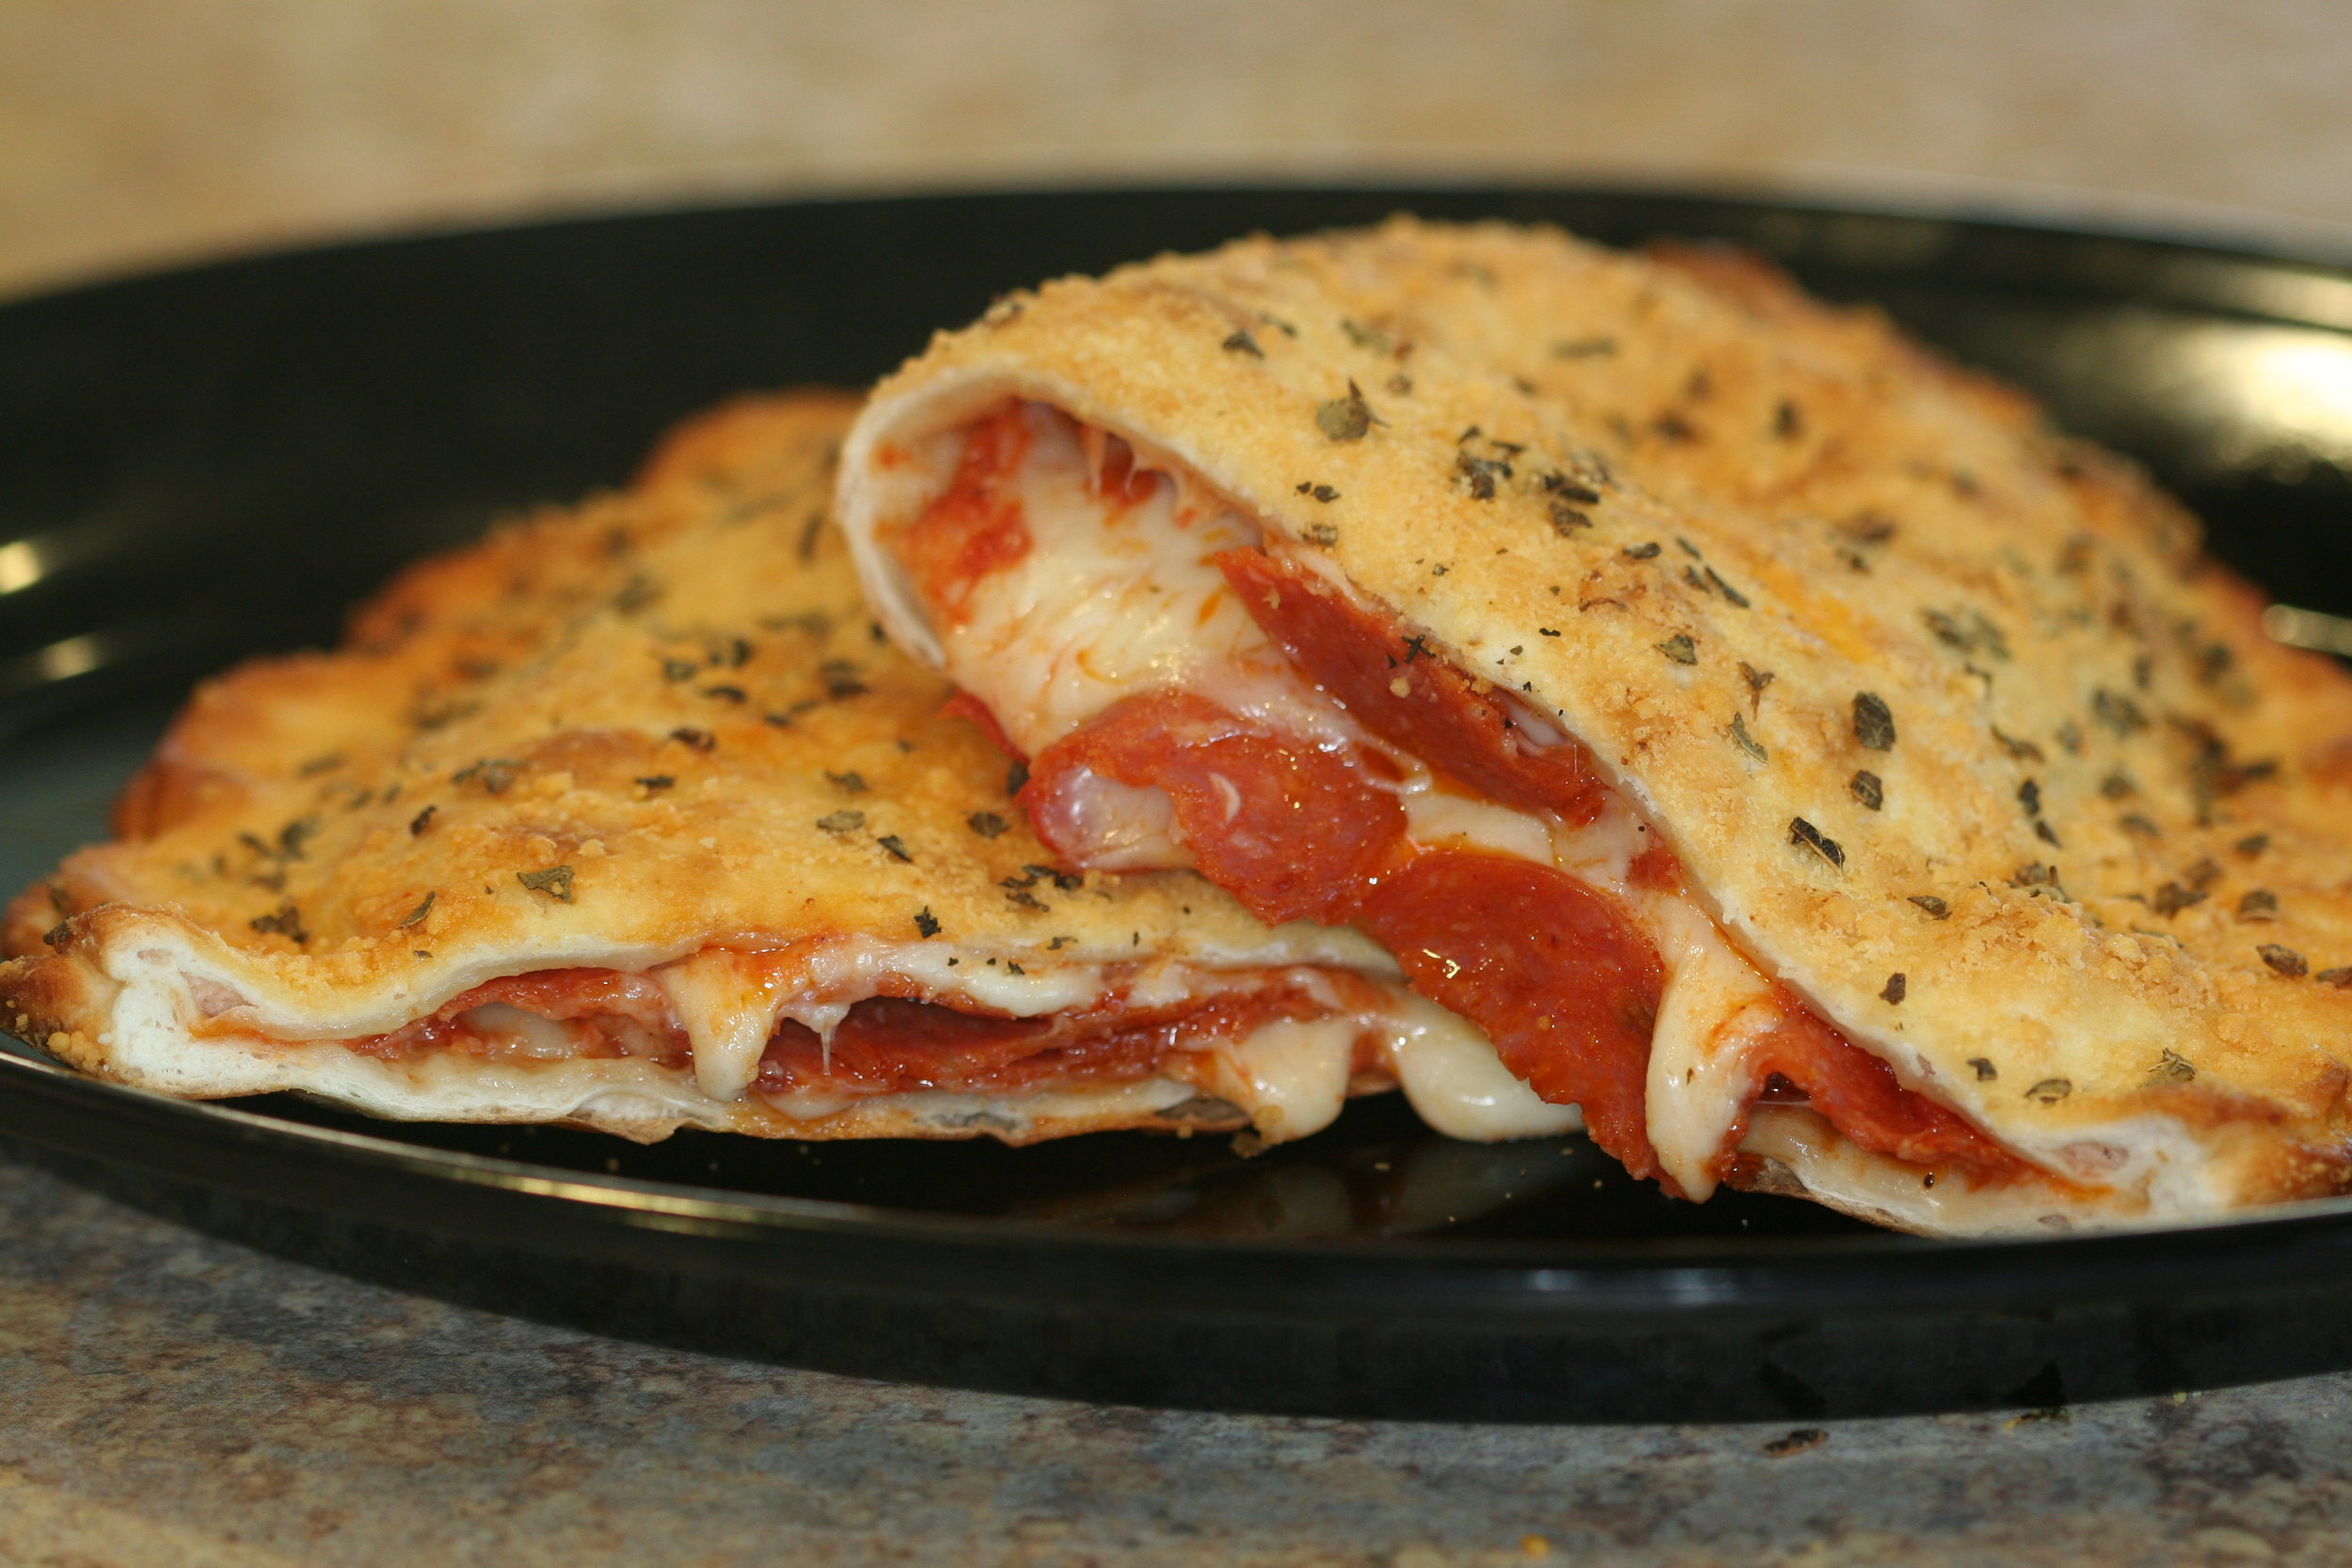 Calzones - Our freshly made pizza dough filled with pizza sauce, cheese & your choice of up to 3 toppings (please limit toppings to 3 or less)Only $7.99